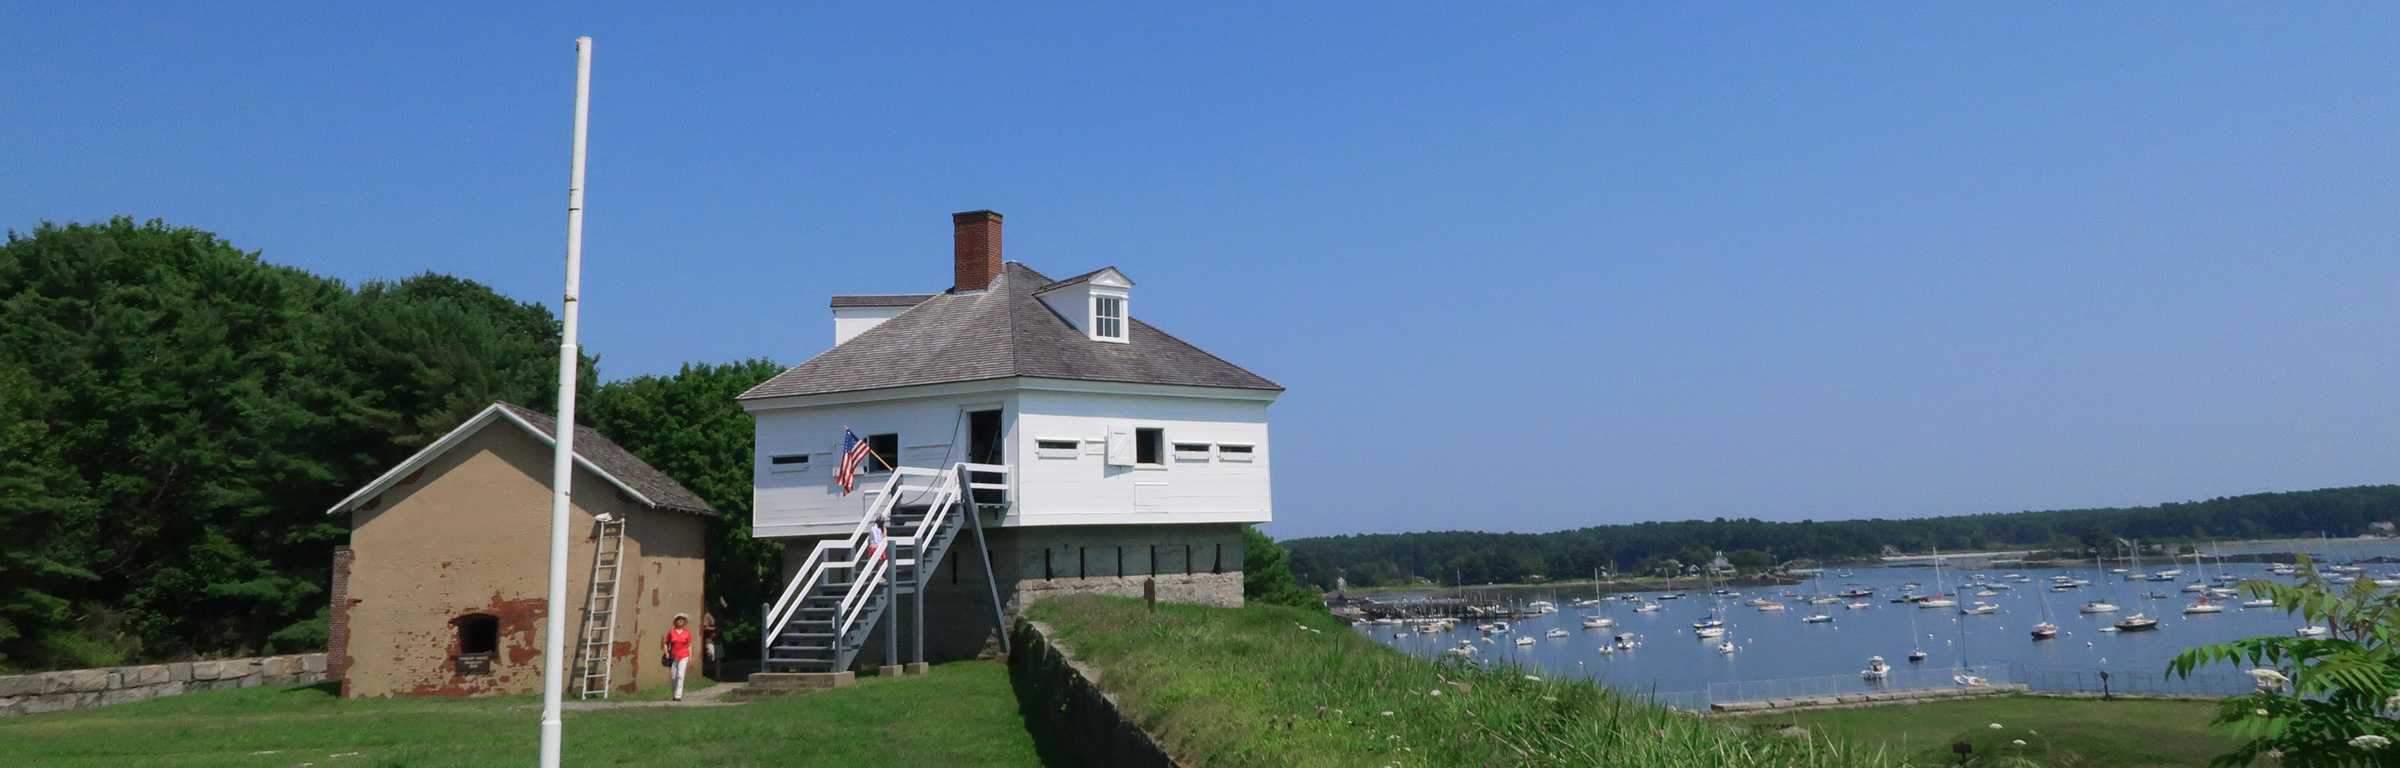 Kittery Scenic Walks Photo